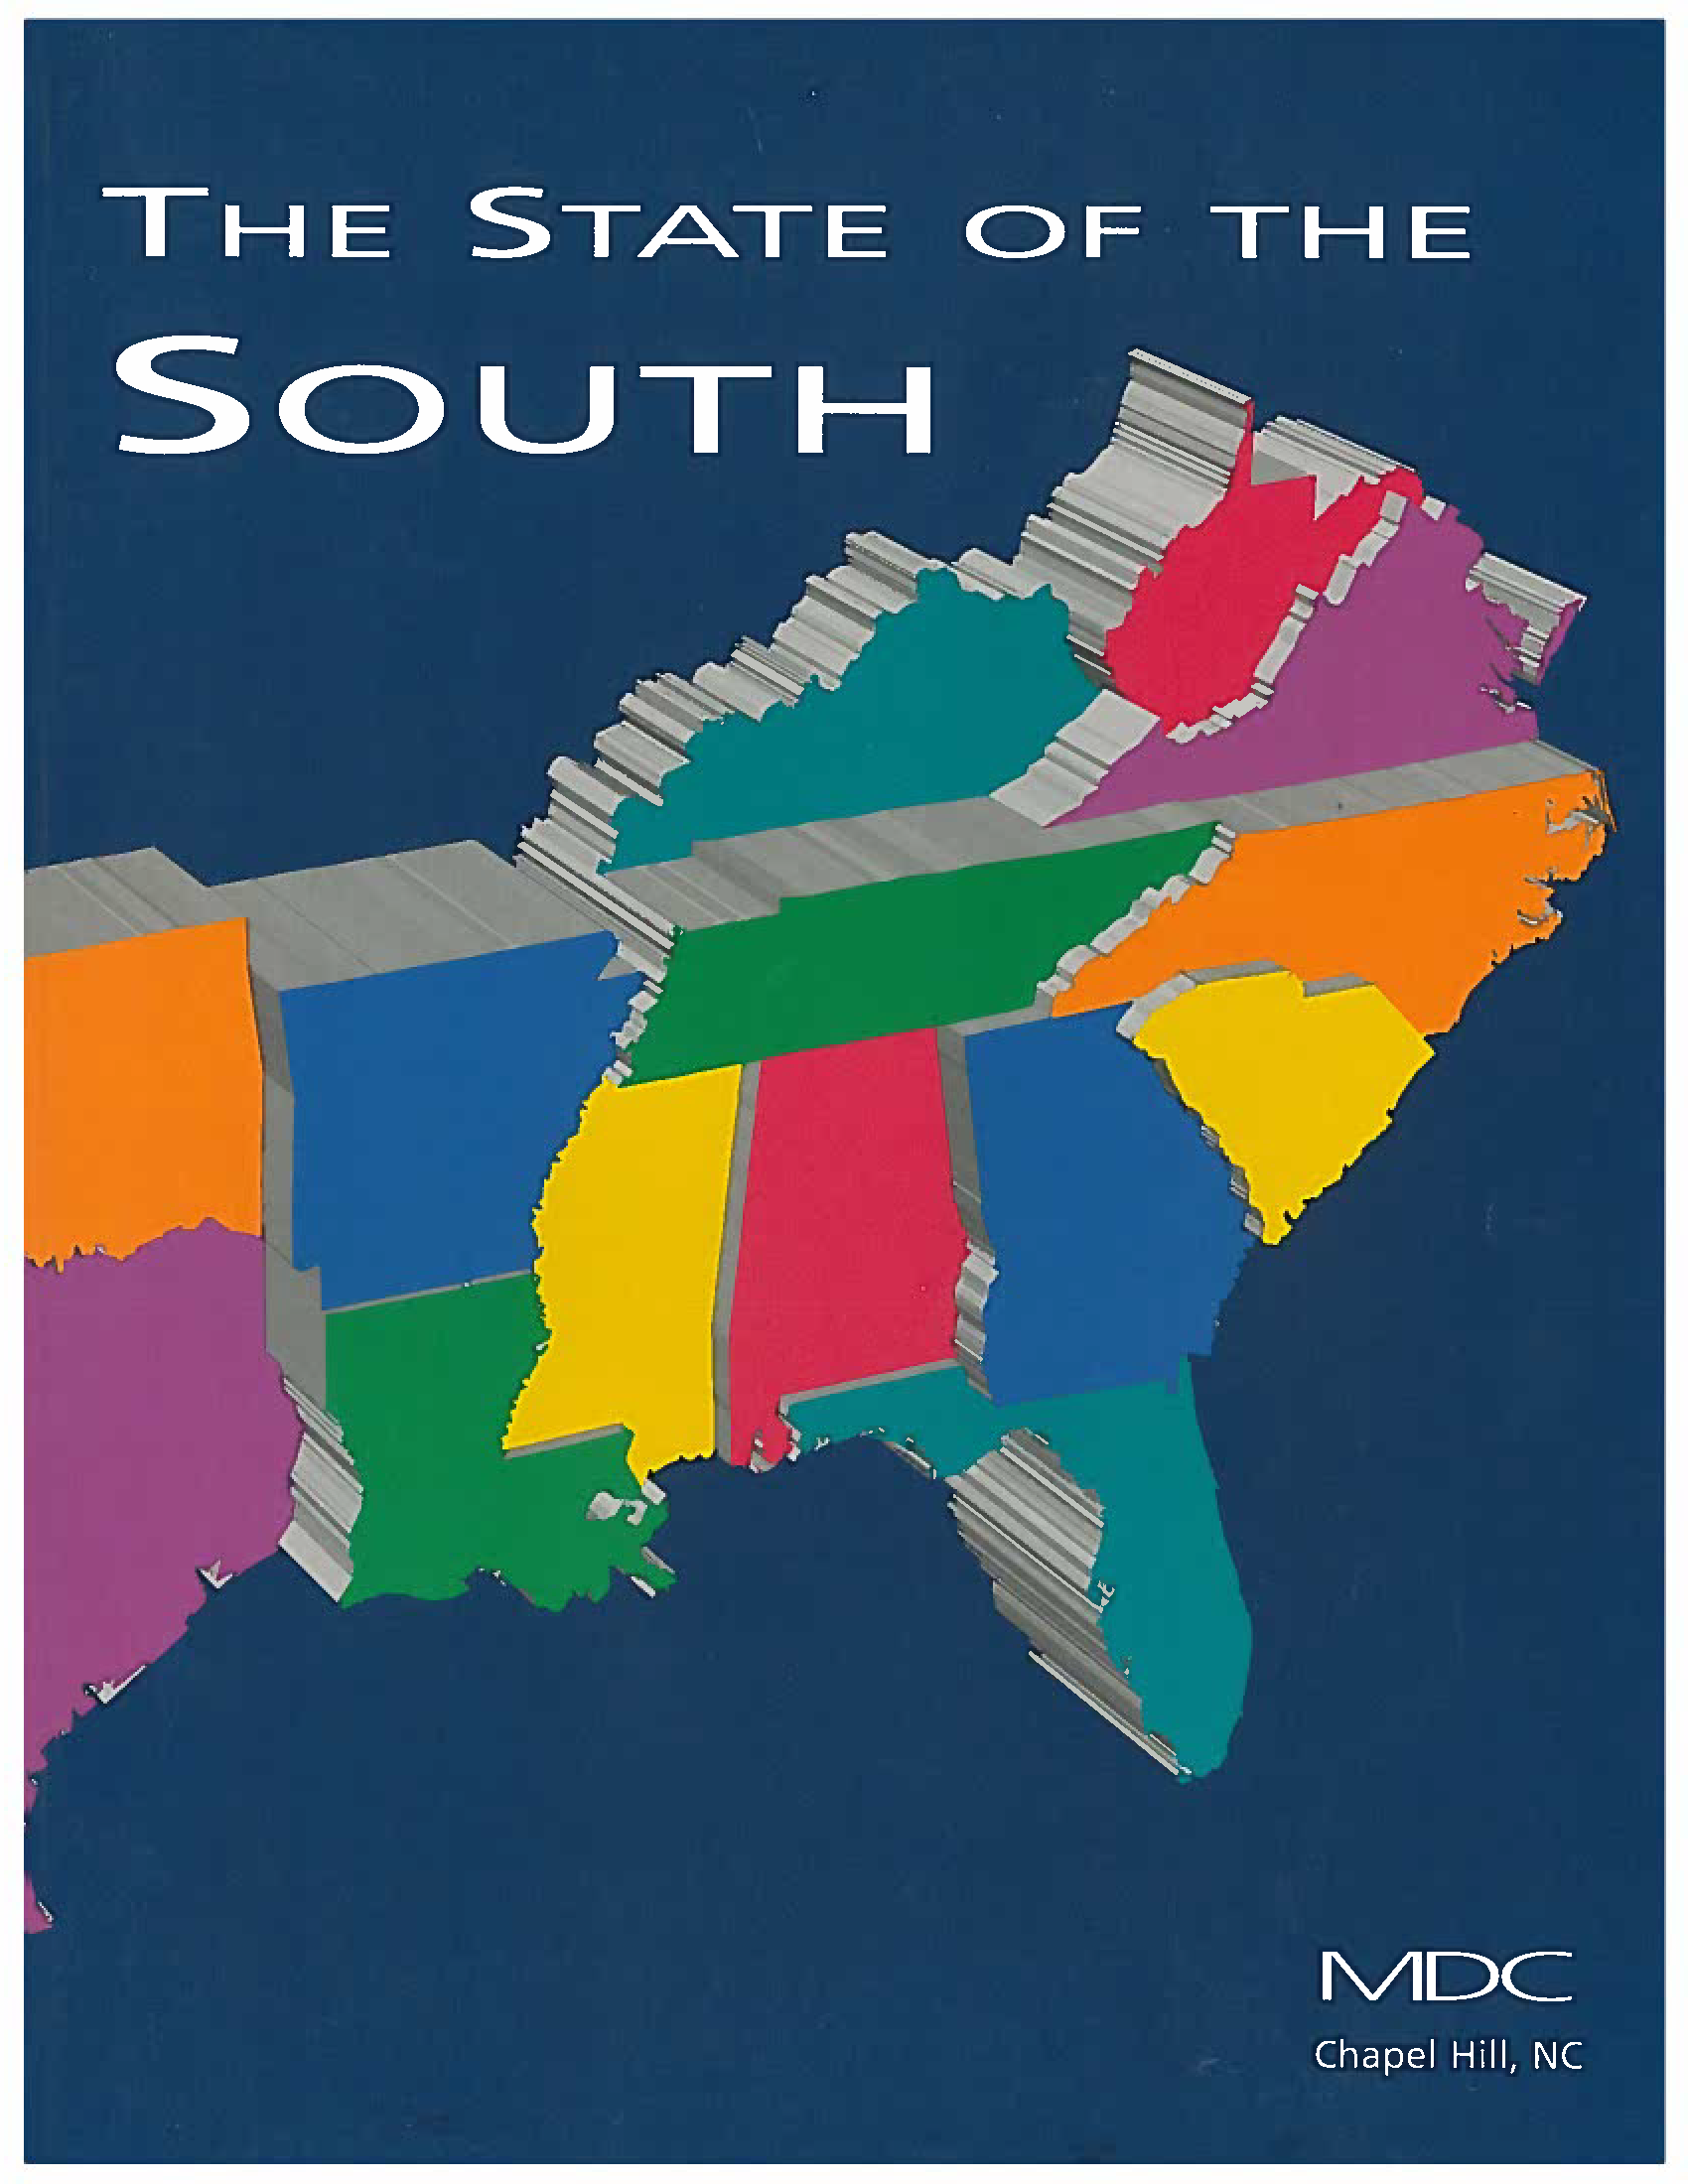 State of the South 1996 cover graphic